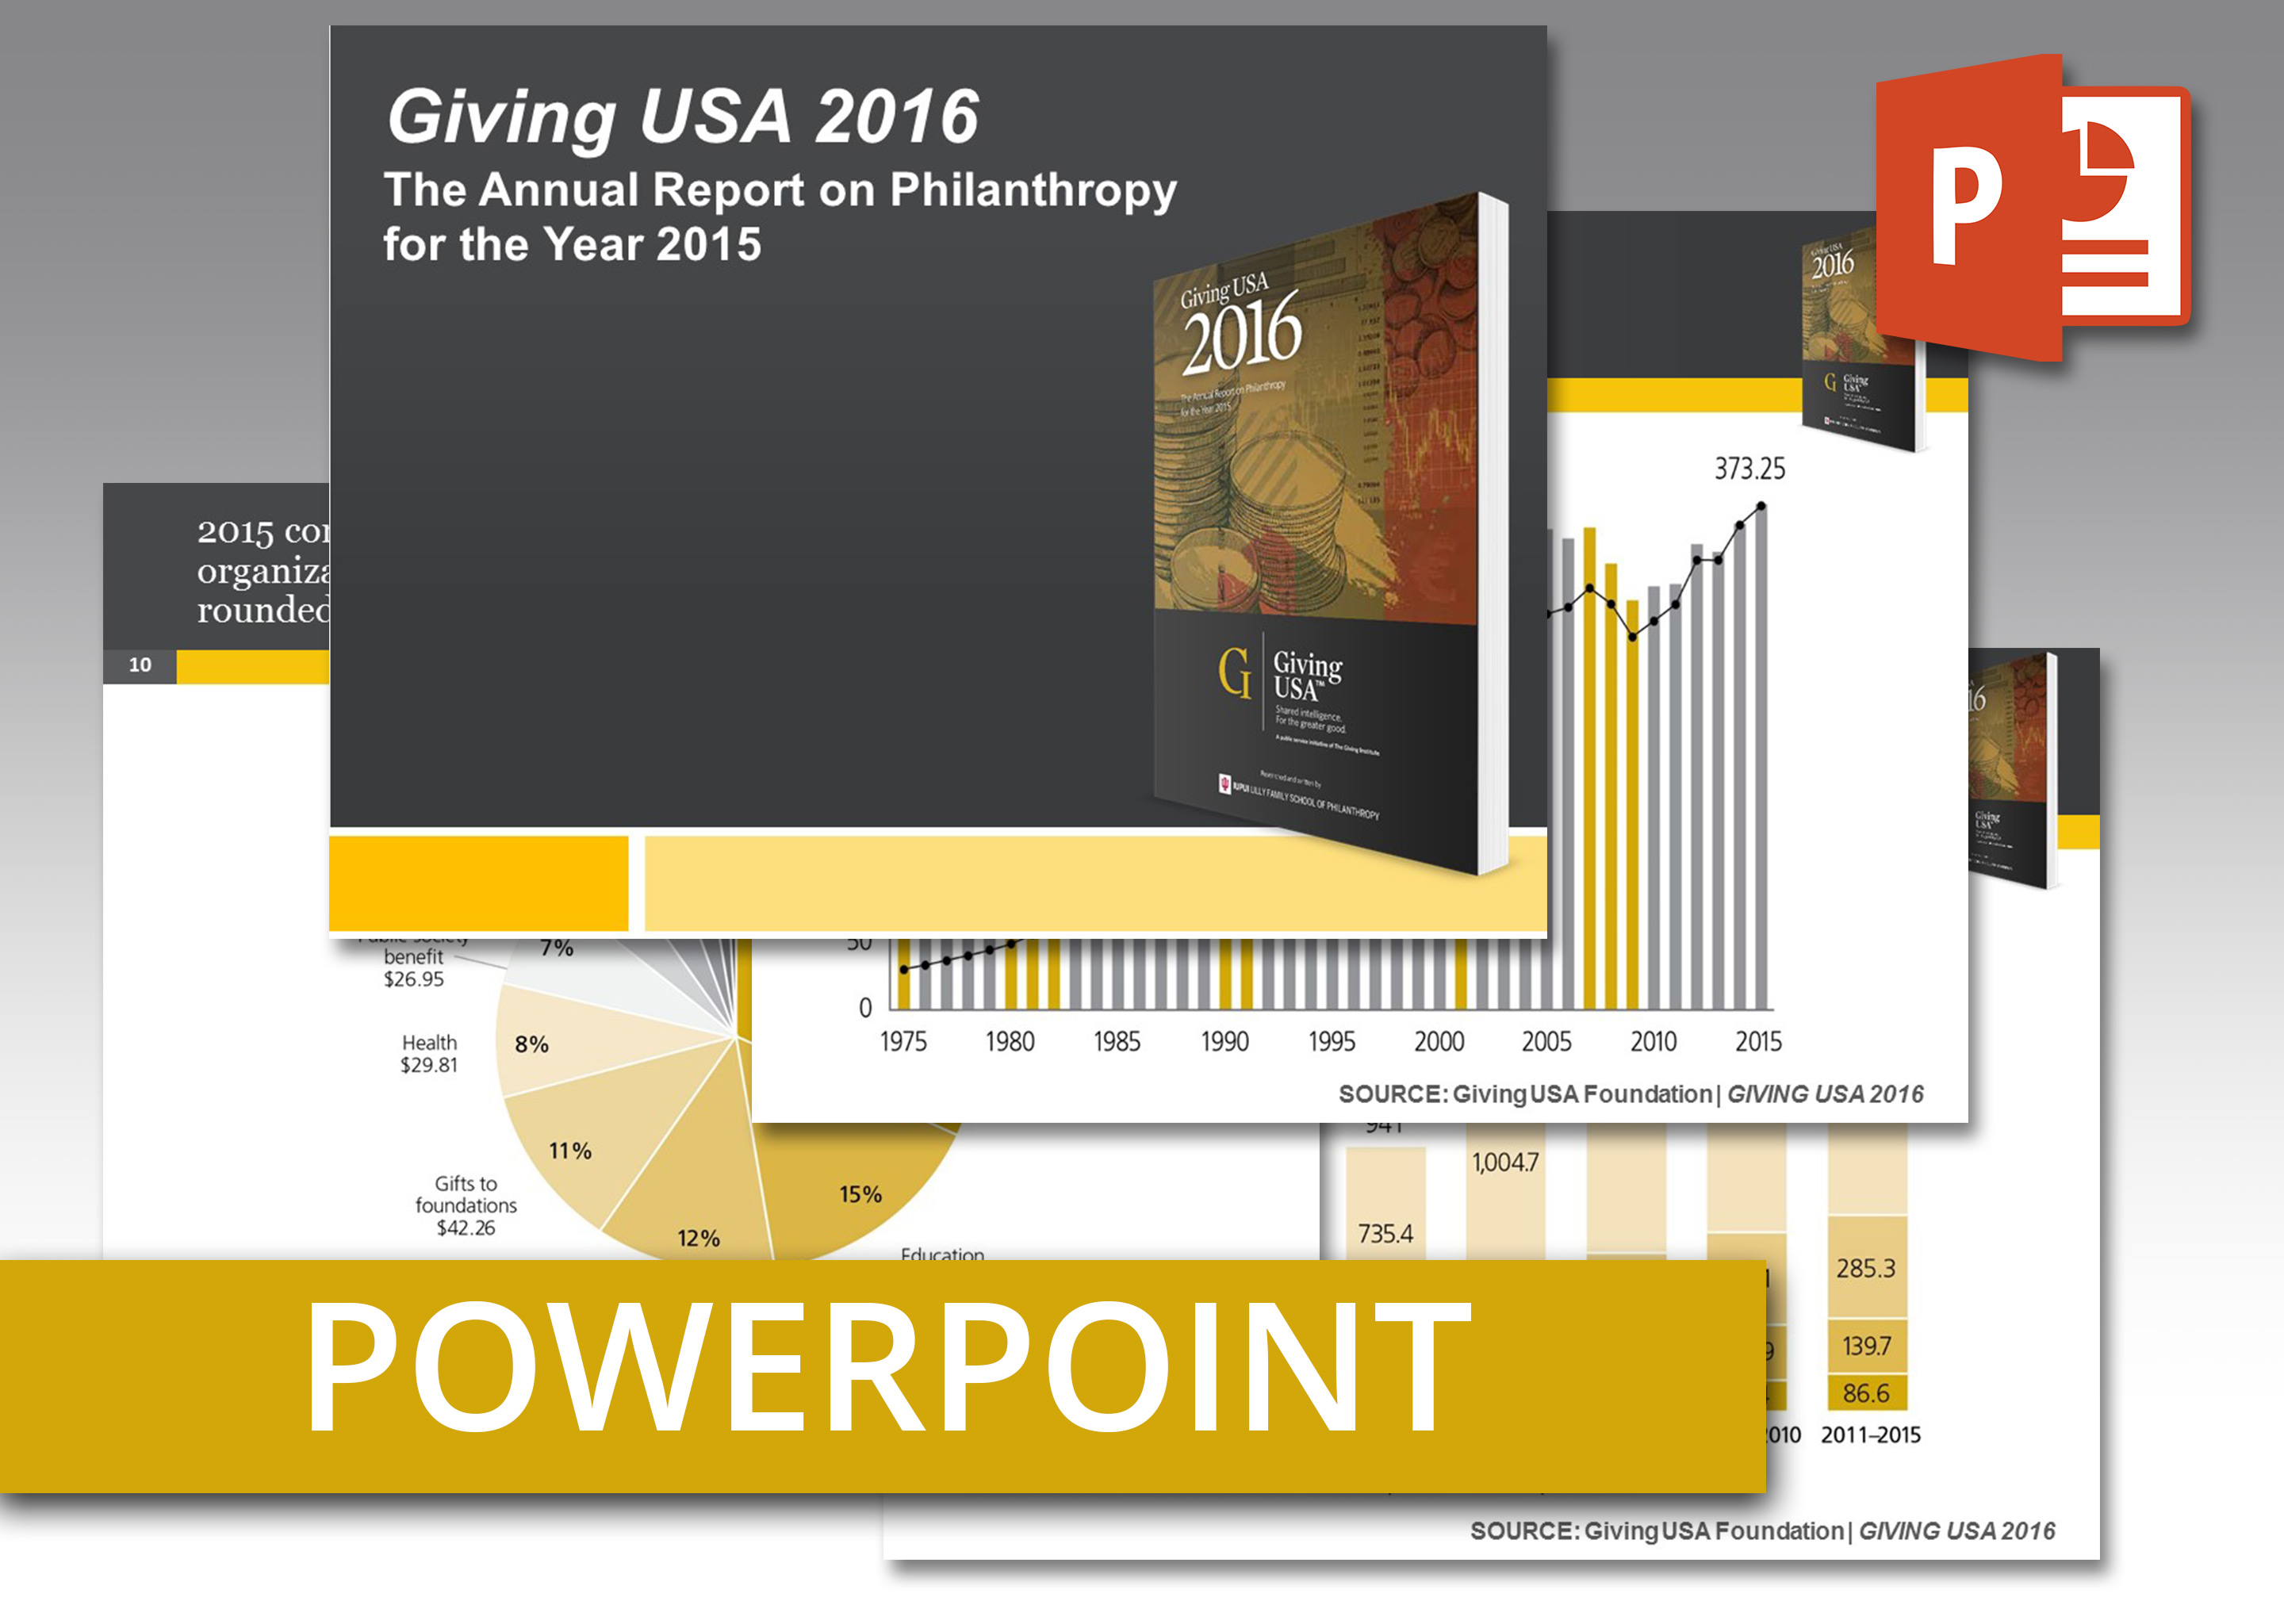 Usdgus  Terrific Giving Usa  Powerpoint An Easytouse Presentation Of Report  With Marvelous Giving Usa  Powerpoint An Easytouse Presentation Of Report Findings Including Talking Points With Alluring Theme For Powerpoint  Also Download Microsoft Powerpoint Online Free In Addition Daniel And The Lions Den Powerpoint And Microsoft Powerpoint Full Version As Well As Powerpoint  Theme Download Additionally Powerpoint Slides Images From Givingusaorg With Usdgus  Marvelous Giving Usa  Powerpoint An Easytouse Presentation Of Report  With Alluring Giving Usa  Powerpoint An Easytouse Presentation Of Report Findings Including Talking Points And Terrific Theme For Powerpoint  Also Download Microsoft Powerpoint Online Free In Addition Daniel And The Lions Den Powerpoint From Givingusaorg